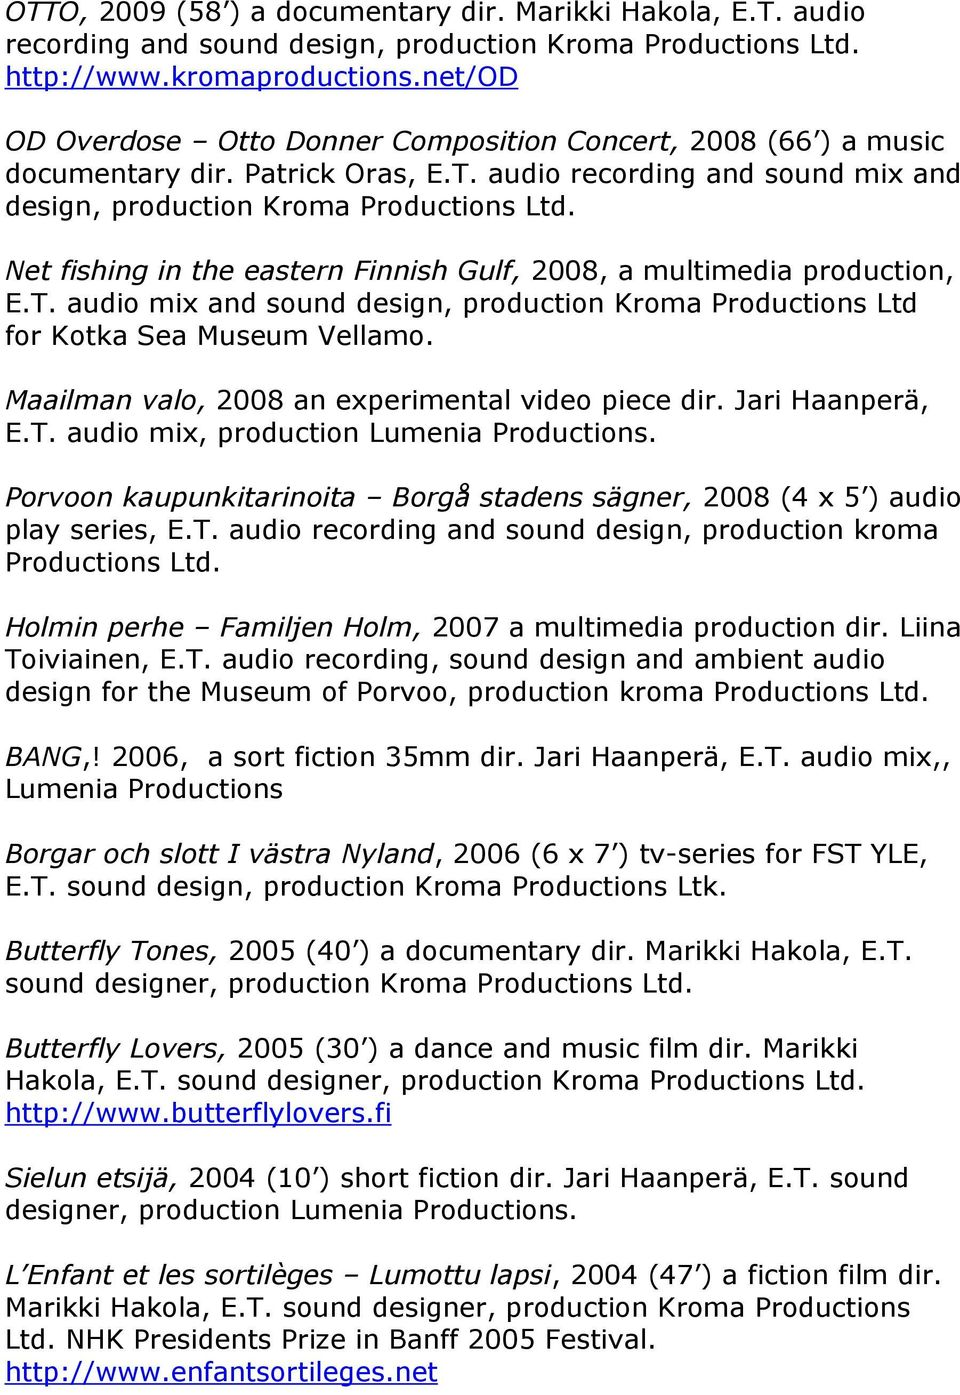 Net fishing in the eastern Finnish Gulf, 2008, a multimedia production, E.T. audio mix and sound design, production Kroma Productions Ltd for Kotka Sea Museum Vellamo.